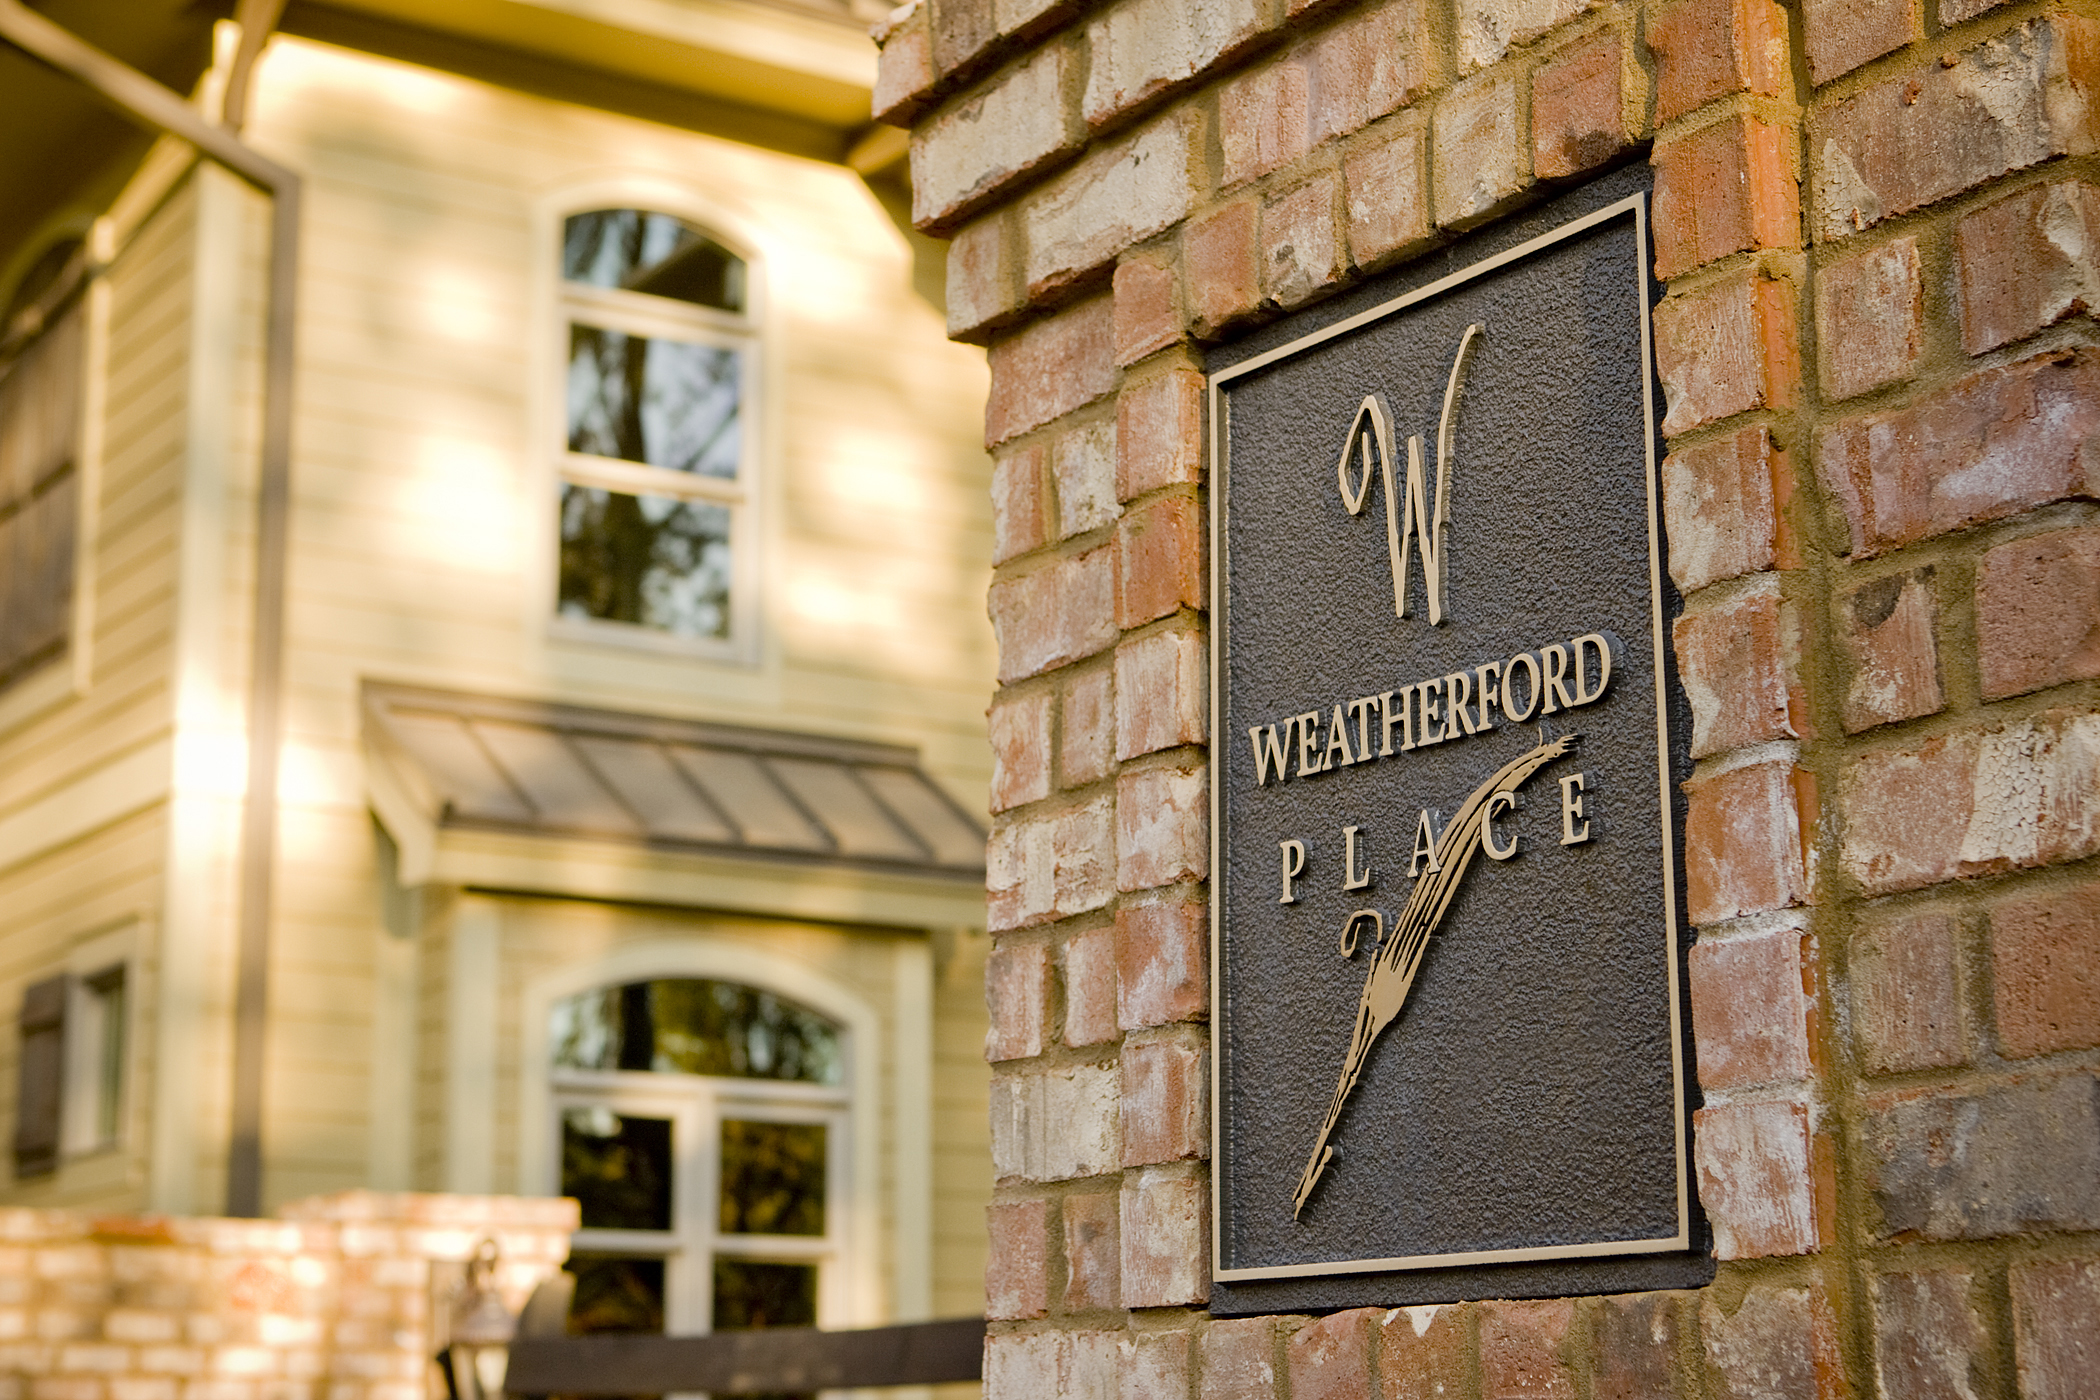 Weatherford place new leed platinum solar home for Weatherford home builders